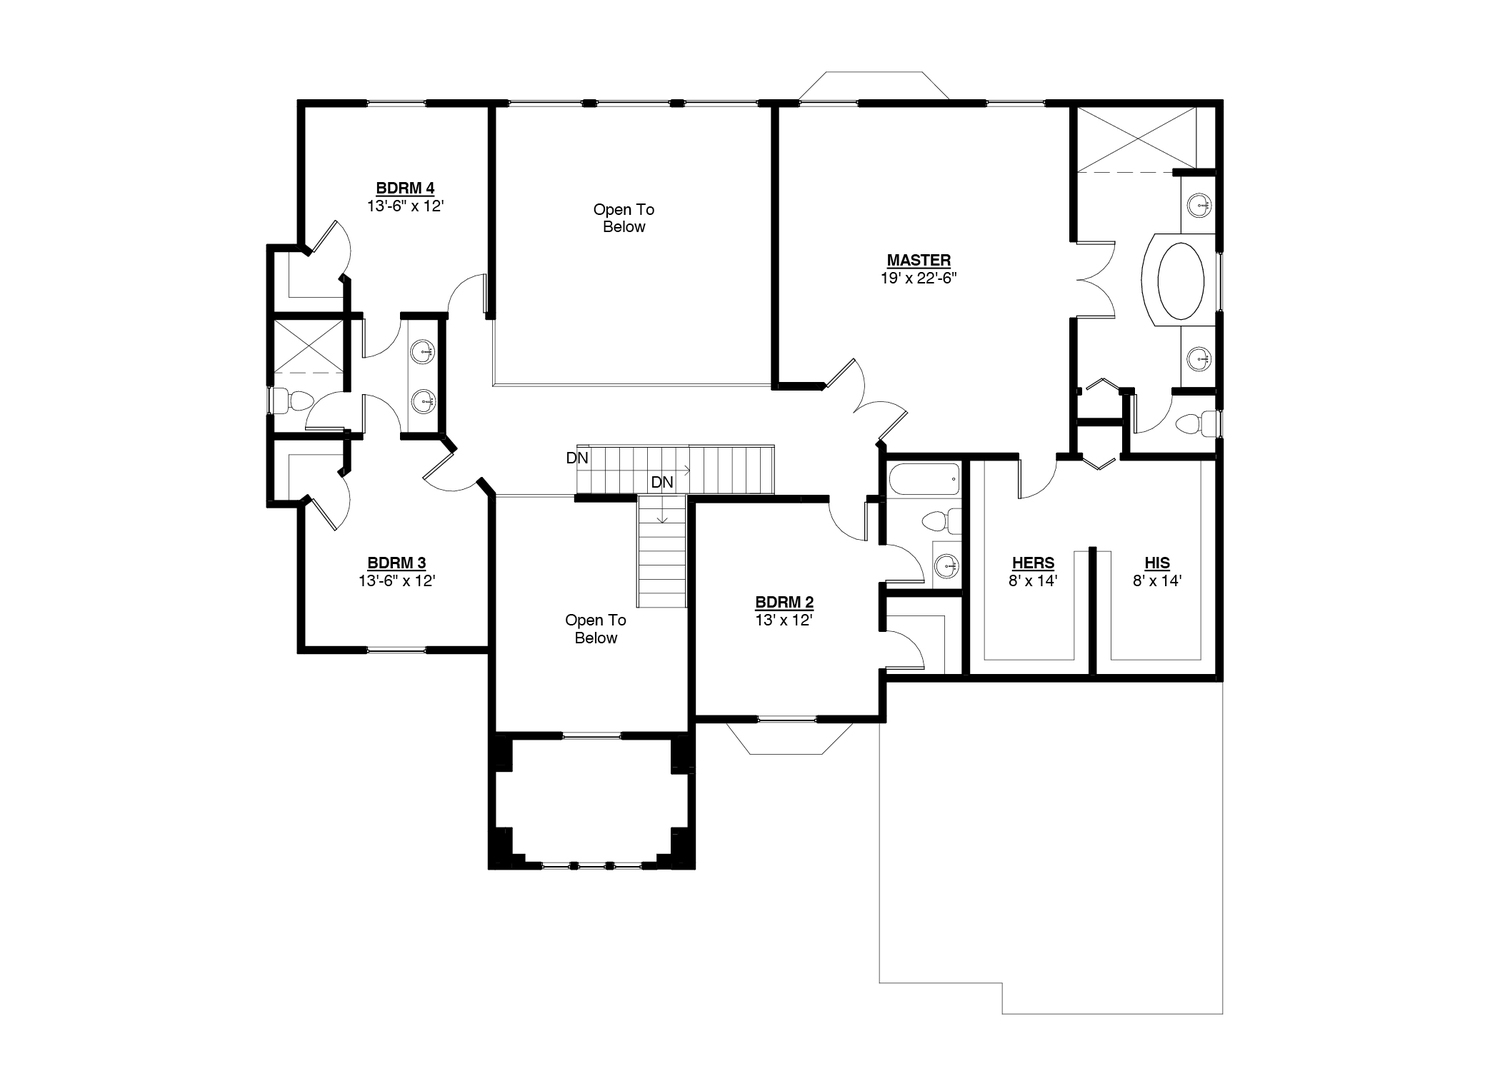 100 4000 sq ft floor plans 3800 sq ft ranch house 4000 sq ft office plan